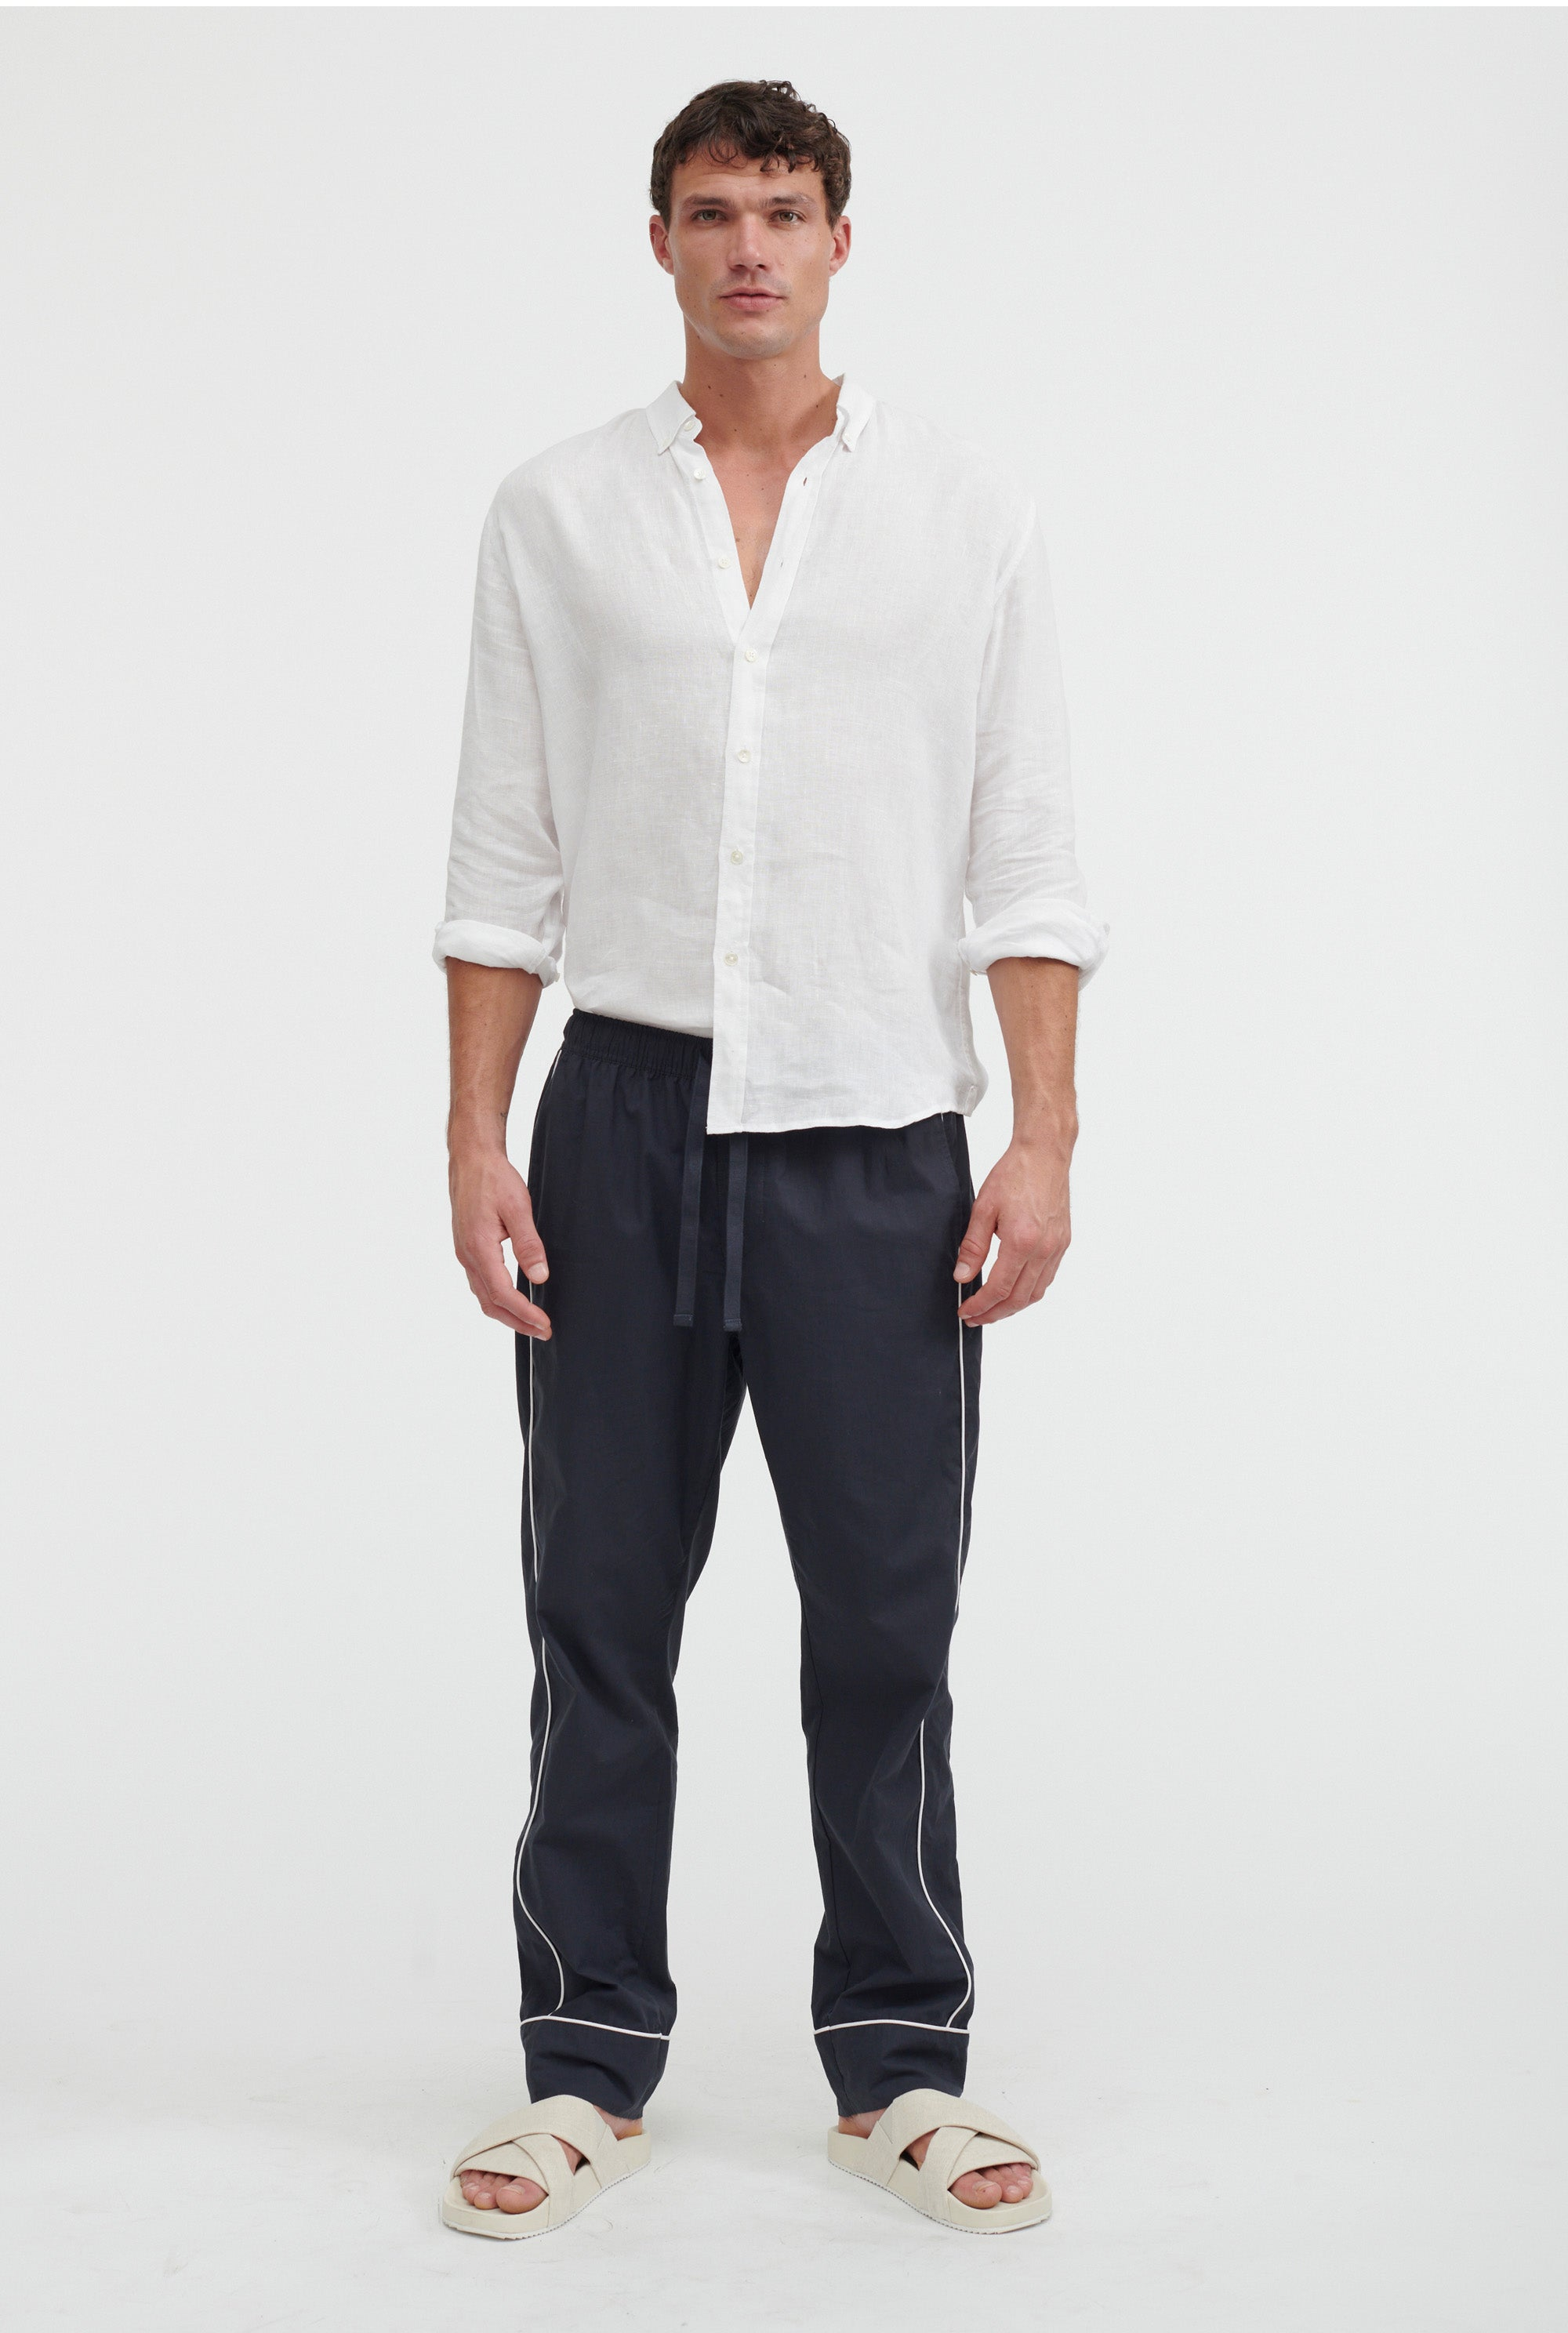 Piped Poplin Pant - Navy/White Piping